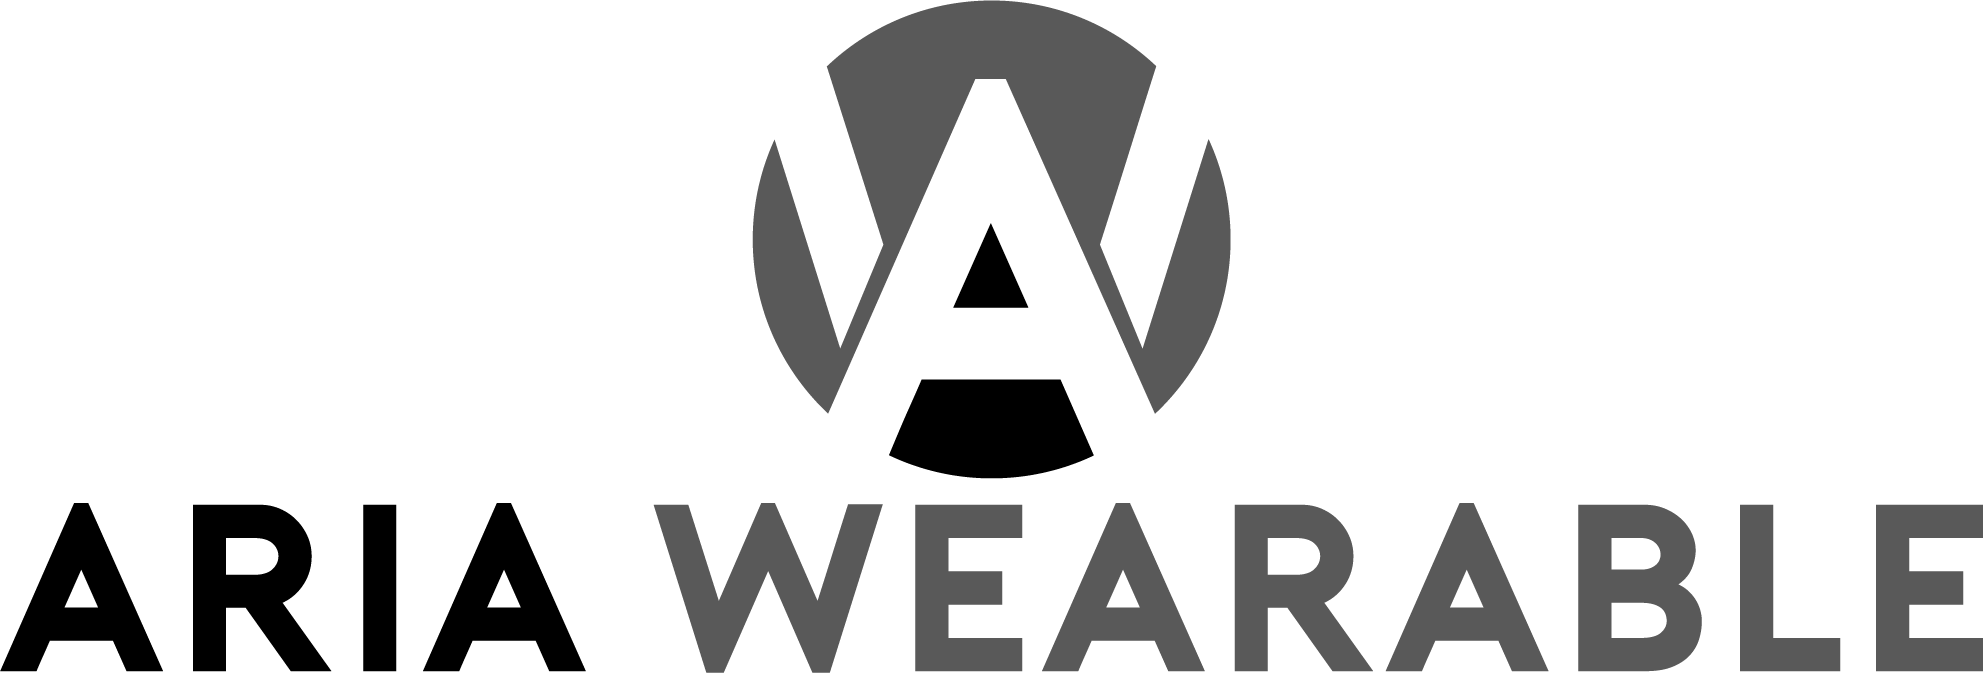 Aria Wearable